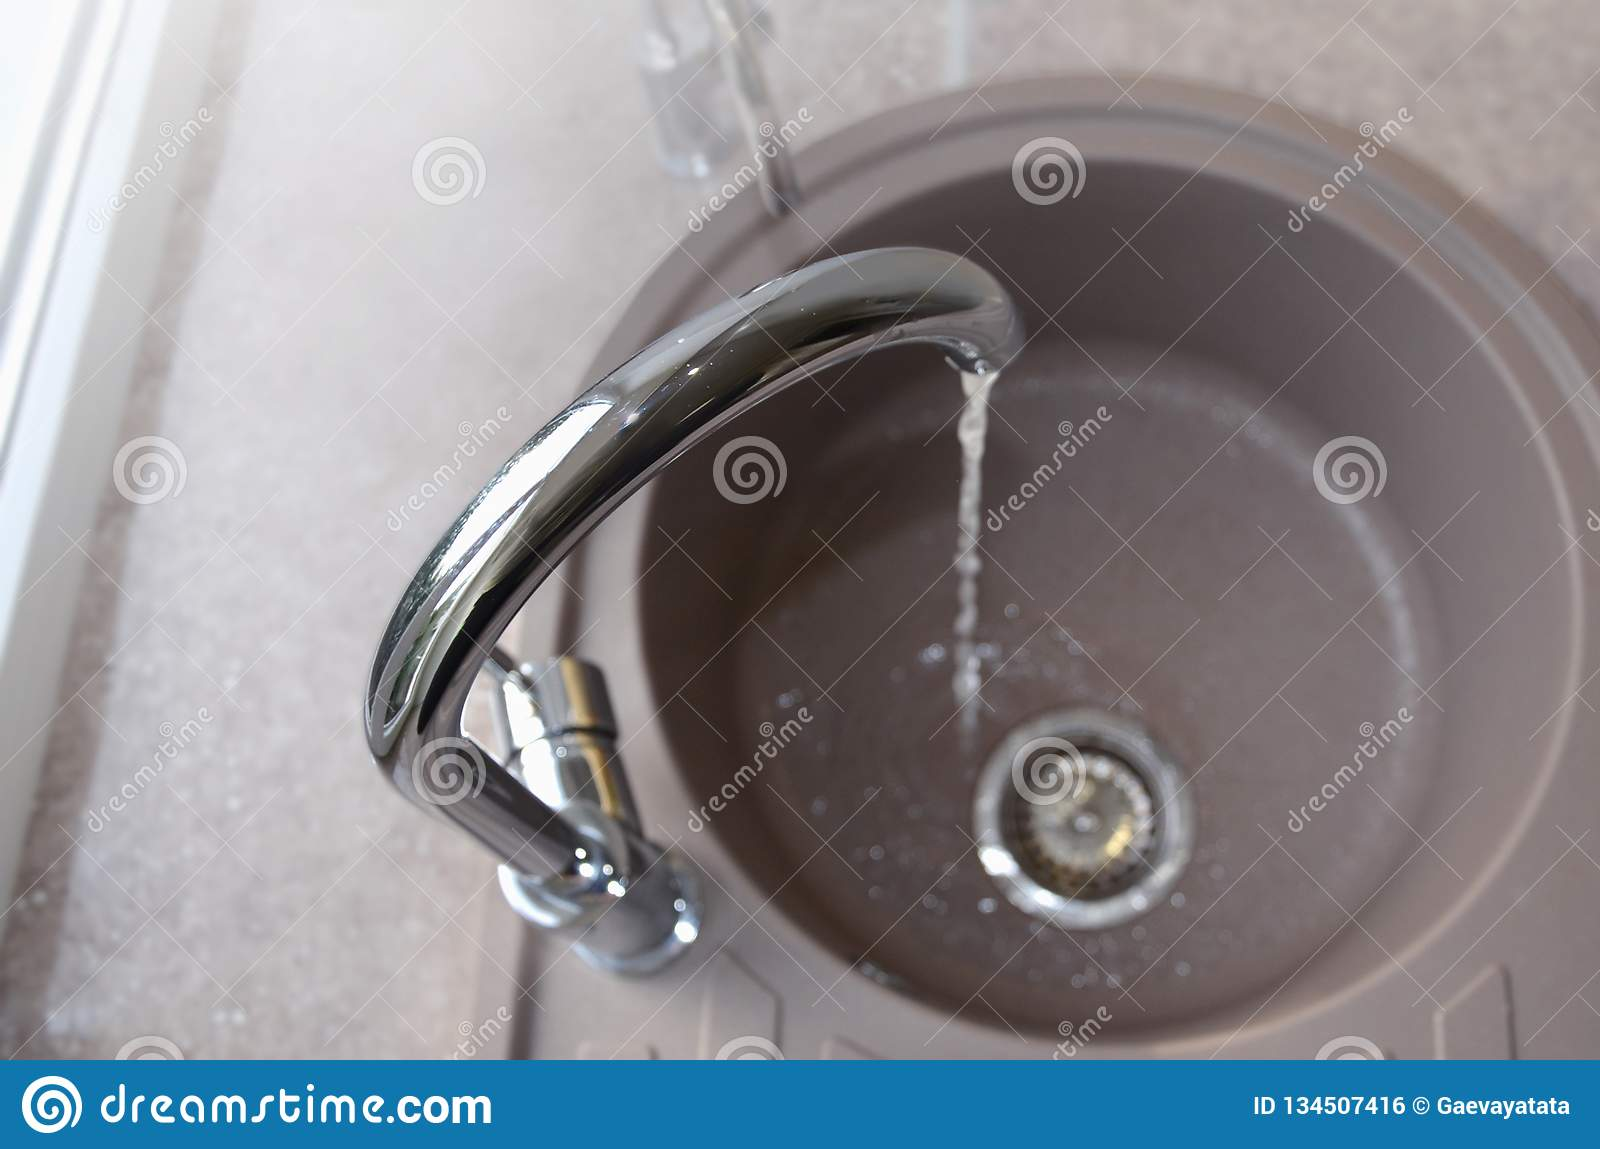 Kitchen Sink And Running Water, View From Above Stock Photo - Image on kitchen faucet, toilet drain, bathtub drain, wig hair catcher drain, kitchen drain parts, kitchen bench drain, kitchen clean out drain, chemical drain clog main drain, bathroom drain, kitchen bath drain, plumbing drain, kitchen drain assembly, kitchen sinks black finish, shower drain, kitchen bathroom, urinal drain, kitchen plumbing,